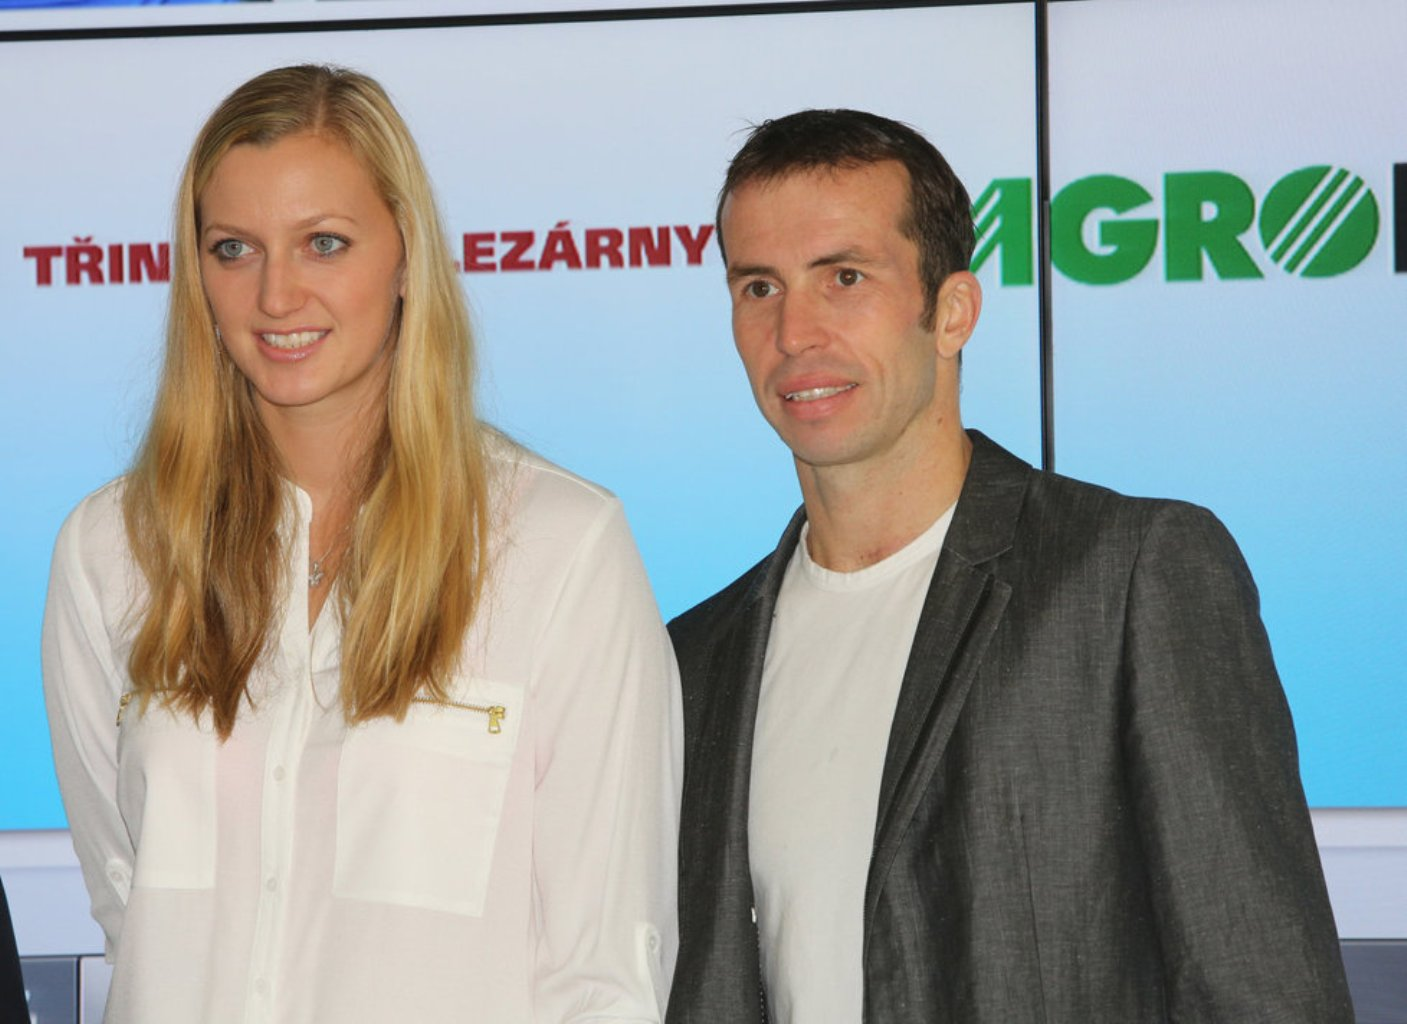 Petra Kvitova and Radek Stepanek 2013..